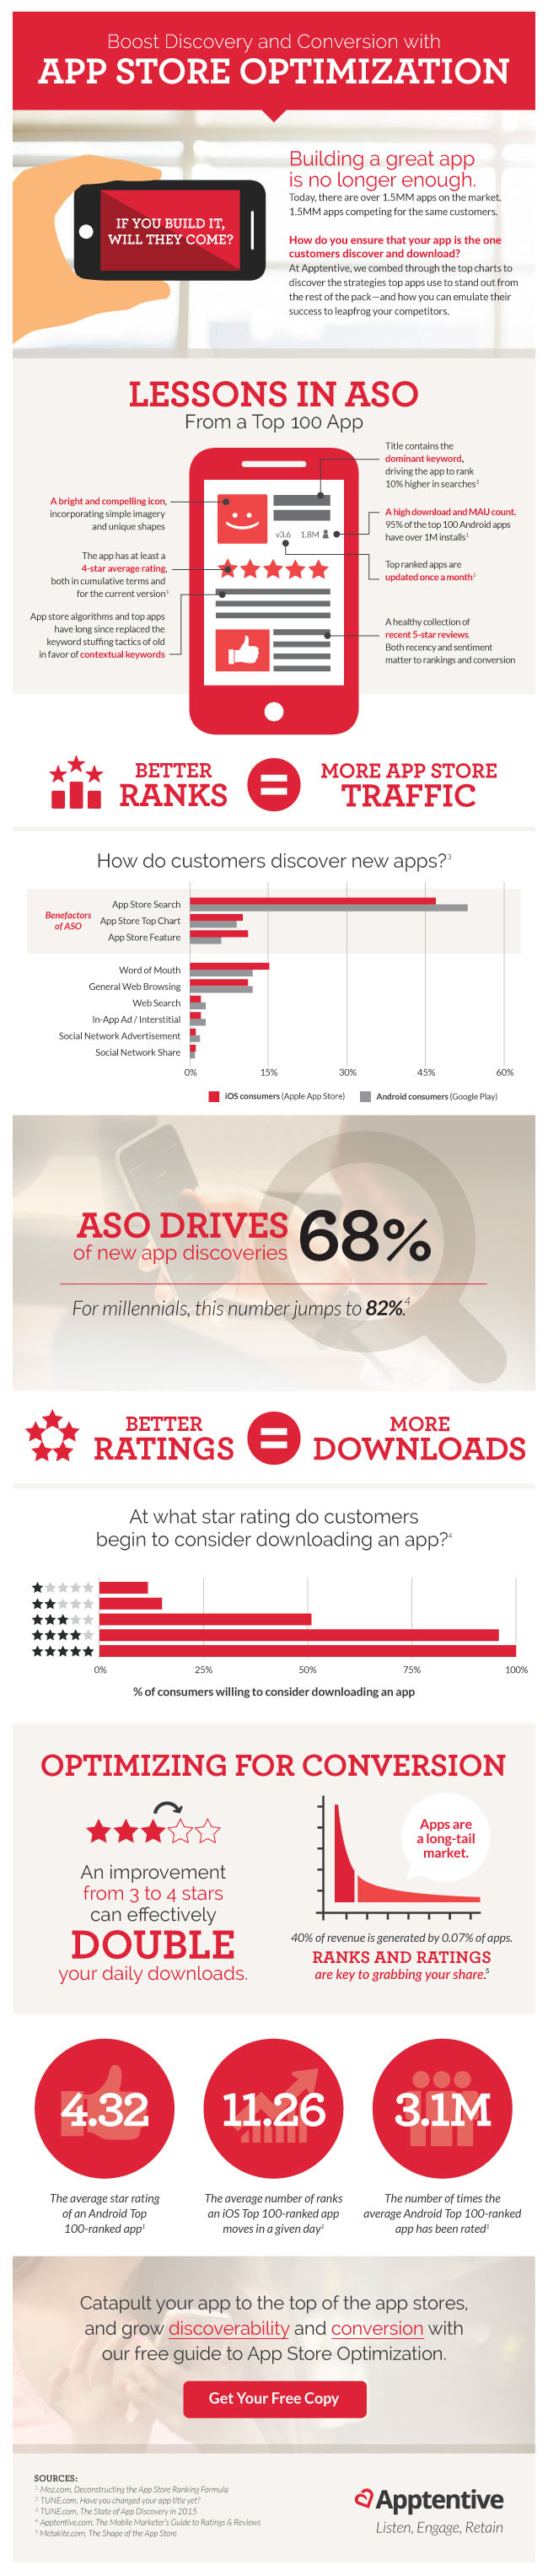 App Store Optimization ASO Infographic with tips for better ratings and rankings